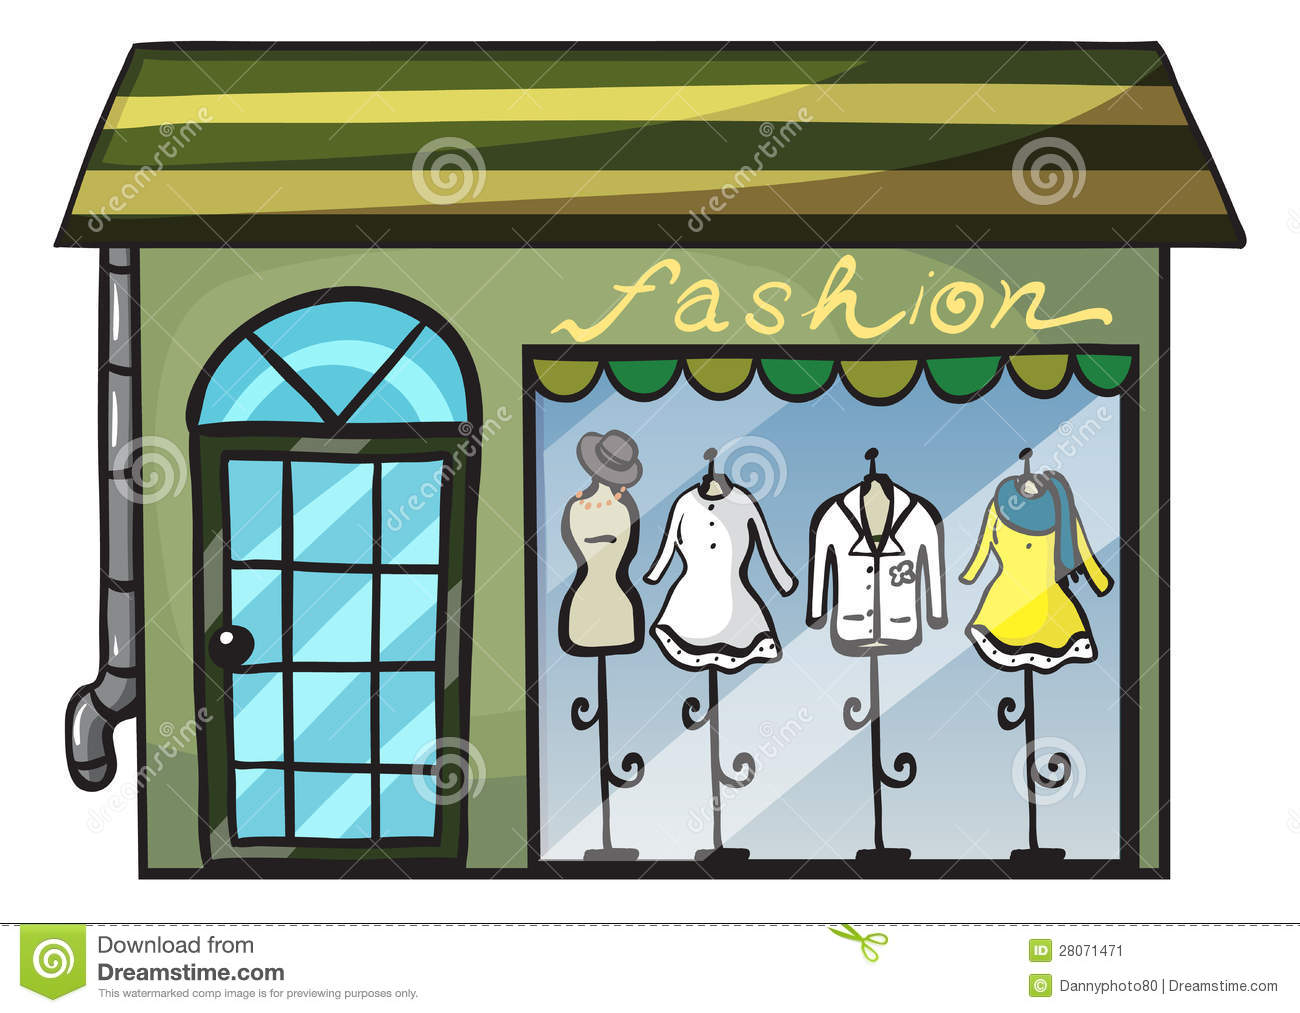 Illustration of a clothing store on a white background